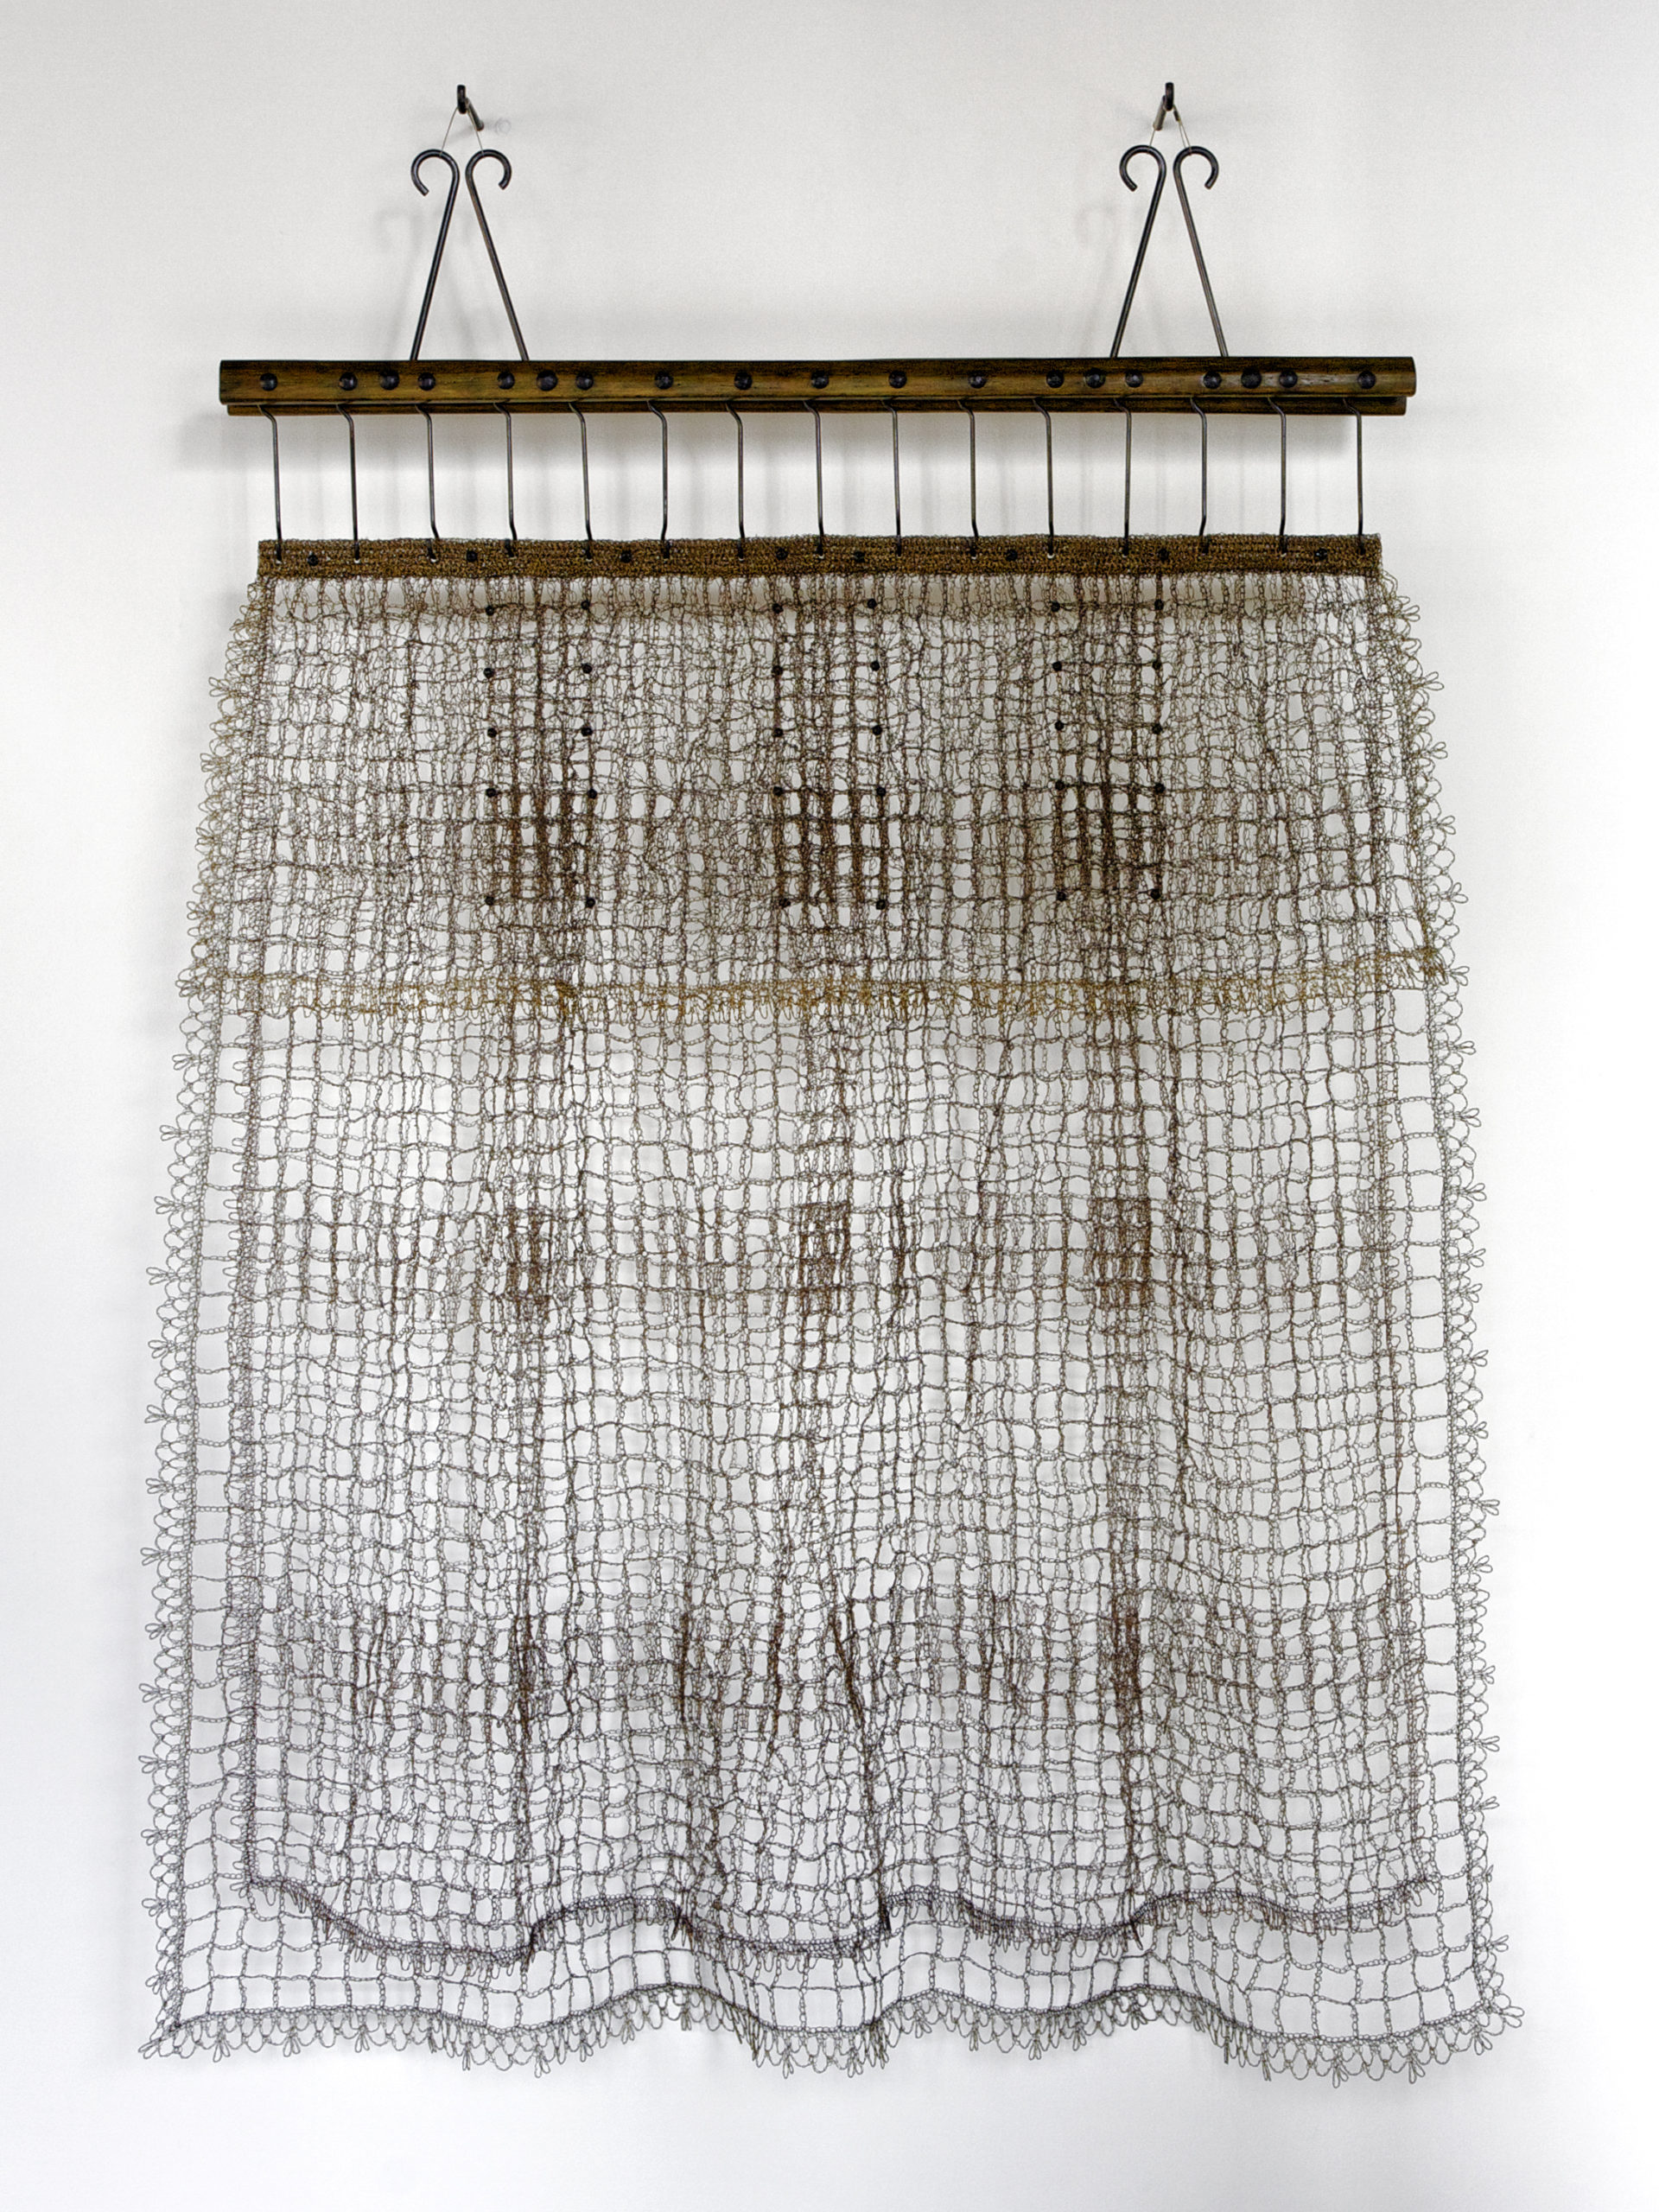 Crocheted wall hanging made of two horizontal wood bars at the top secured with two nails.